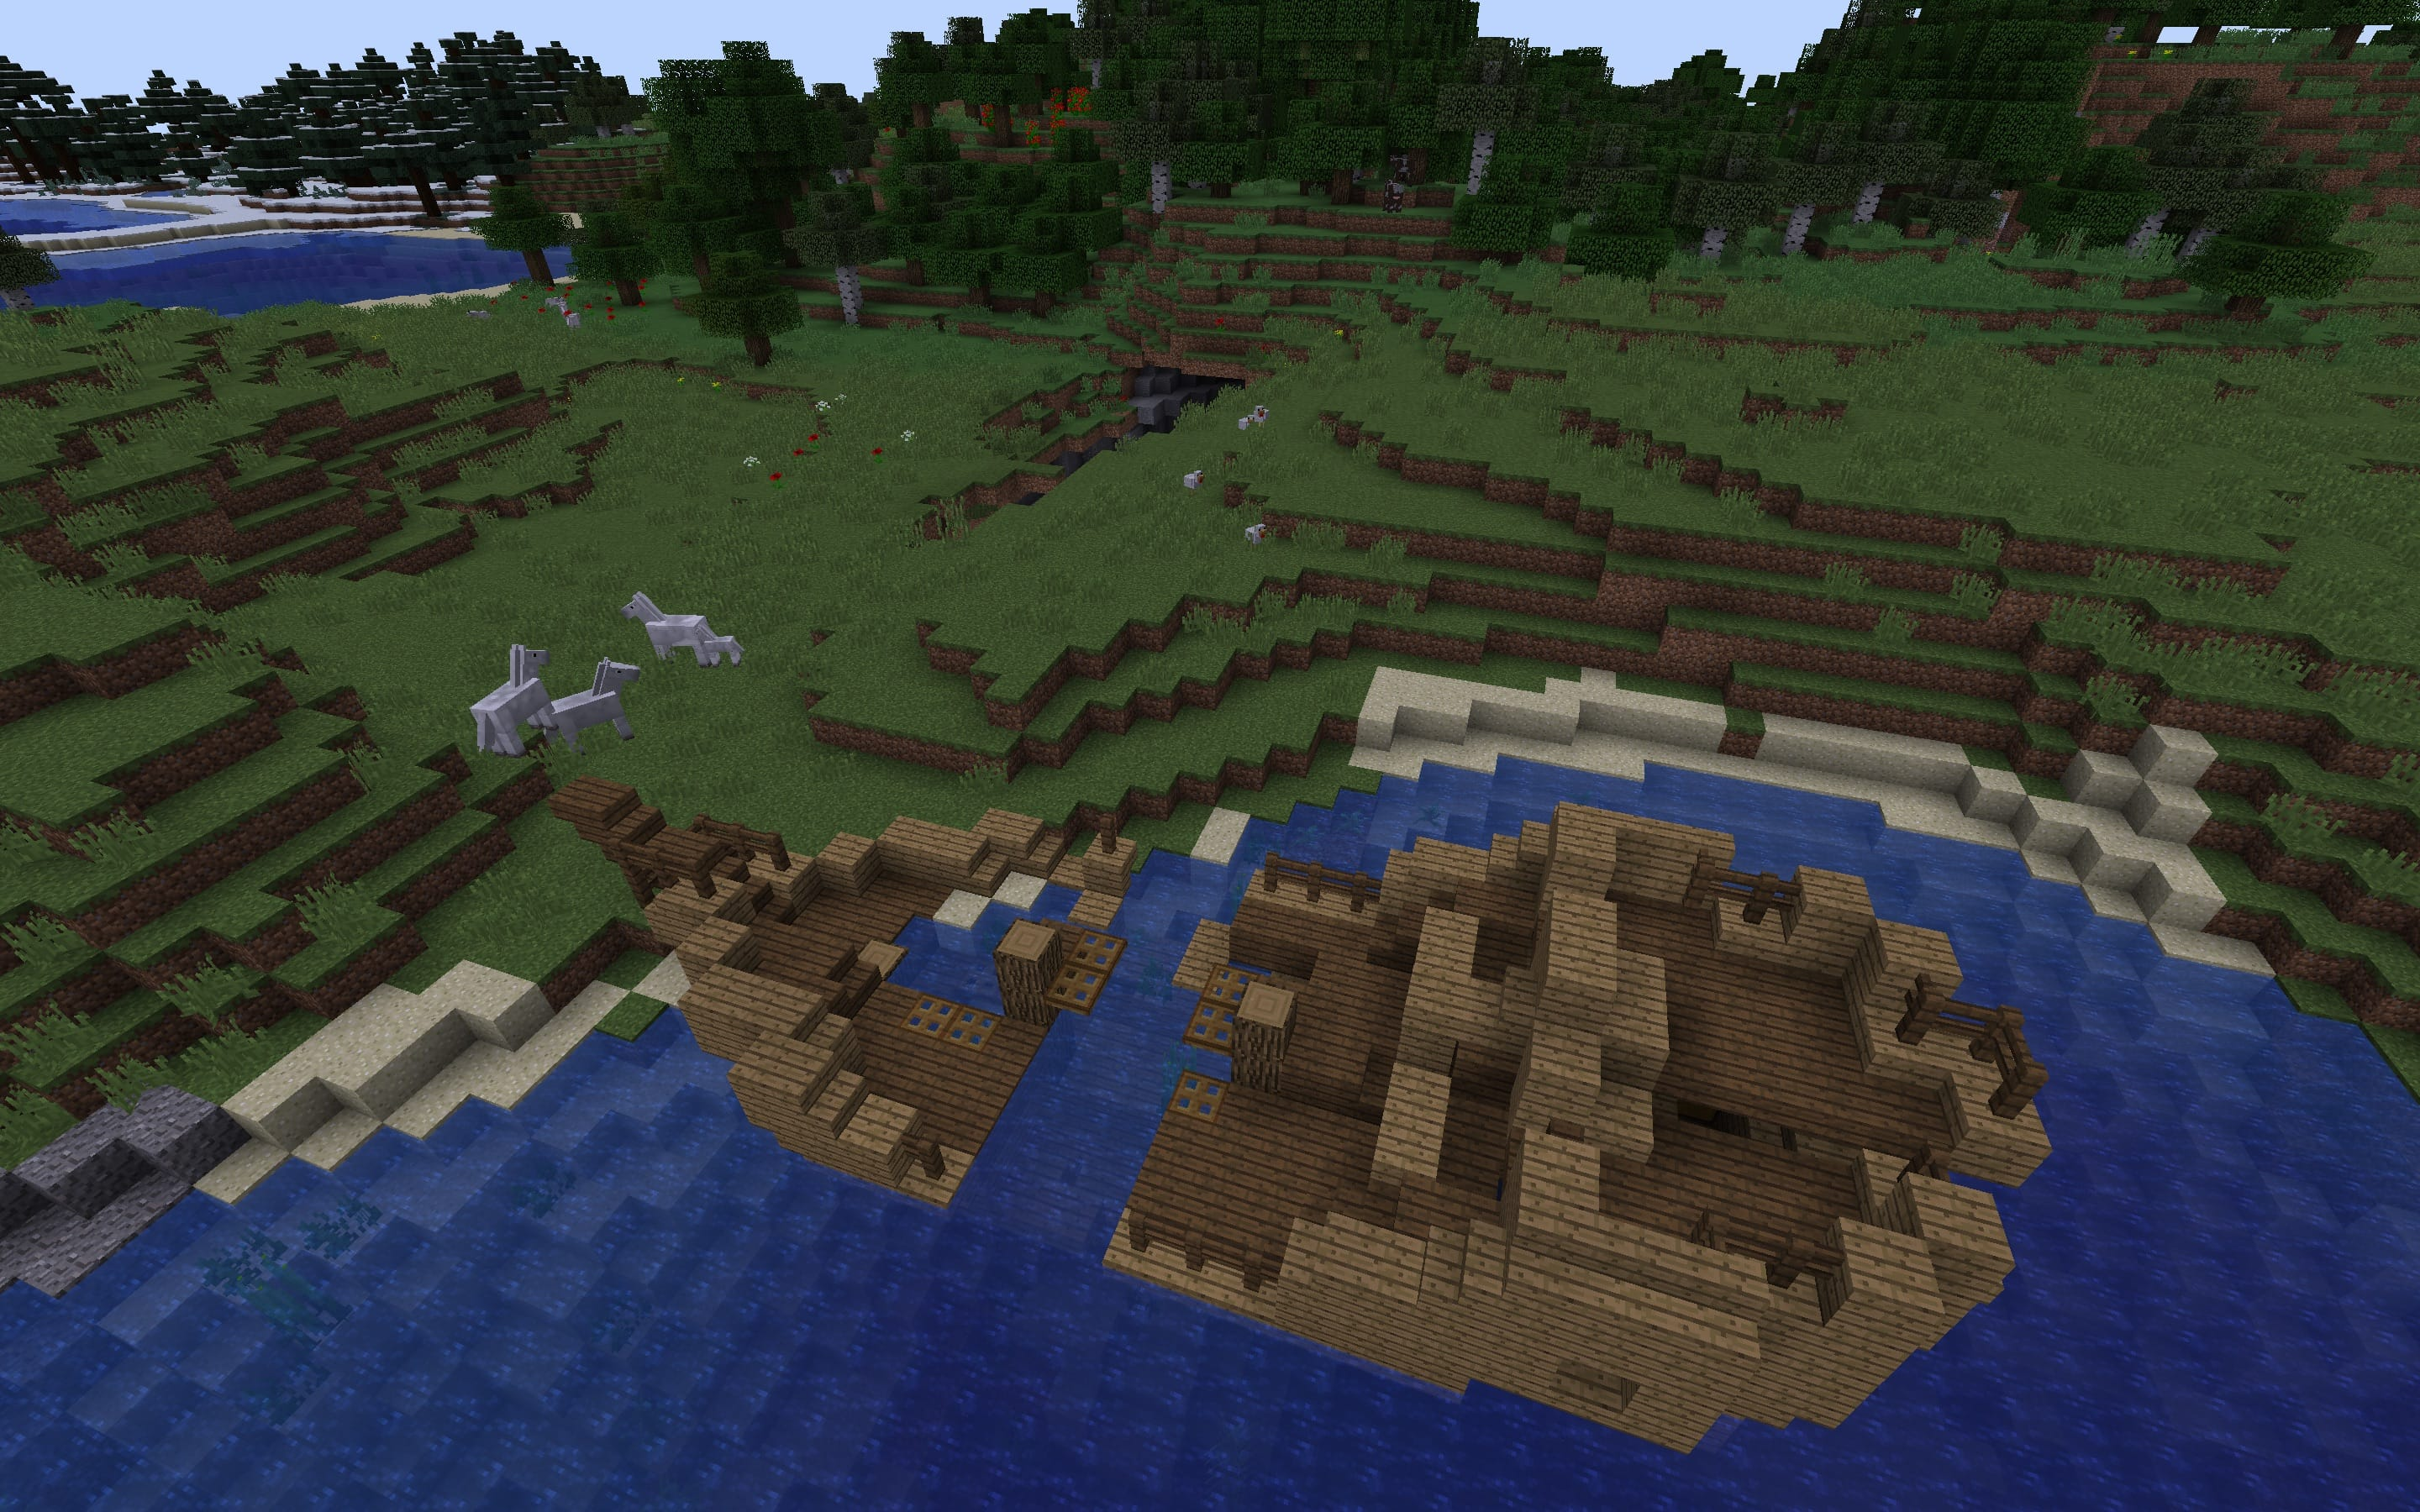 Shipwreck plus Ravine with Mineshaft at Spawn